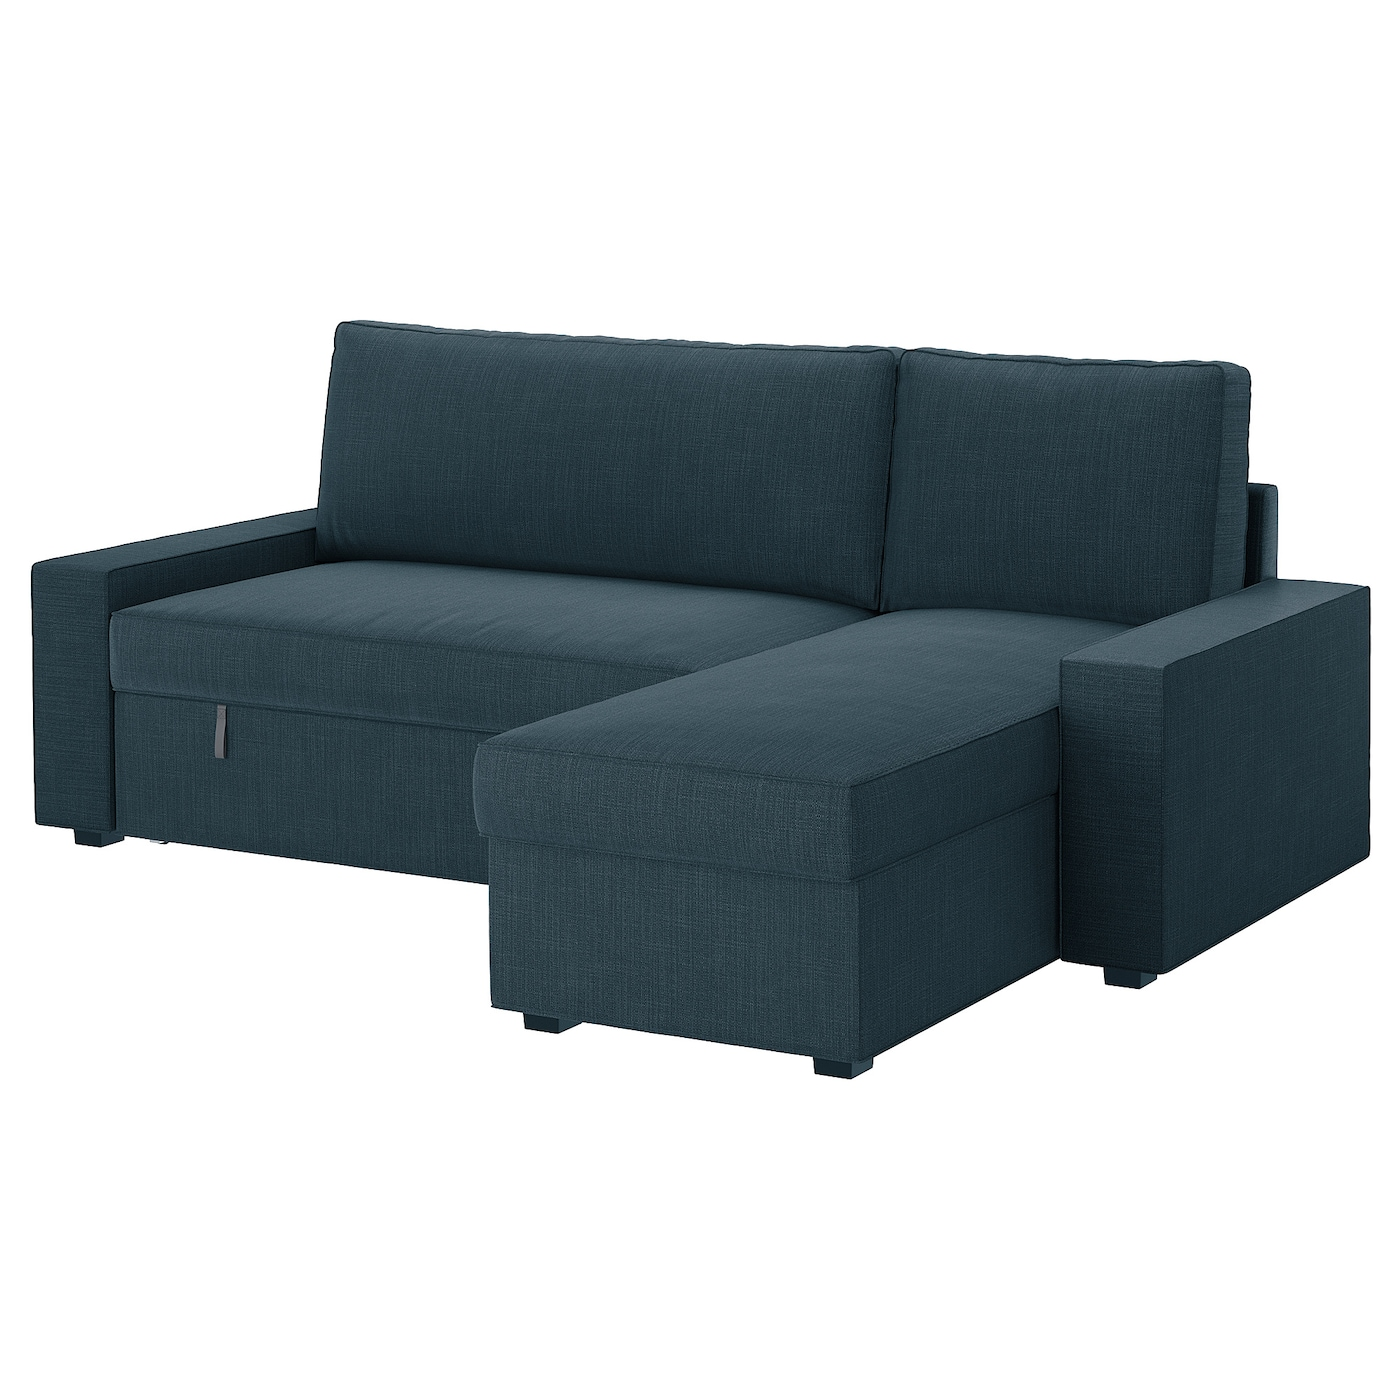 Vilasund sofa bed with chaise longue hillared dark blue ikea - Sofa bed with chaise lounge ...